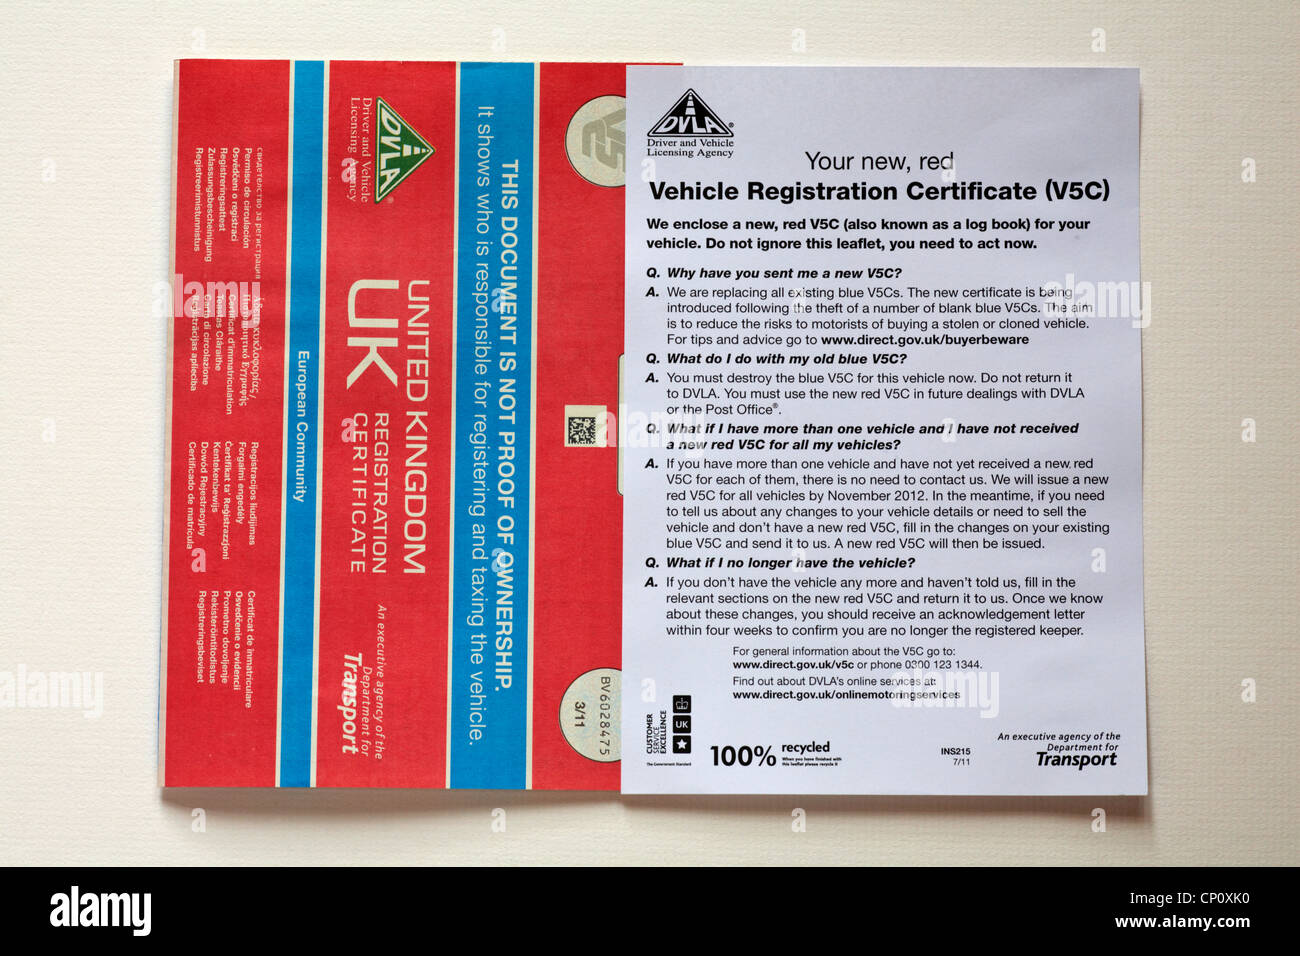 New red vehicle registration certificate v5c document with new red vehicle registration certificate v5c document with covering letter isolated on white background xflitez Images